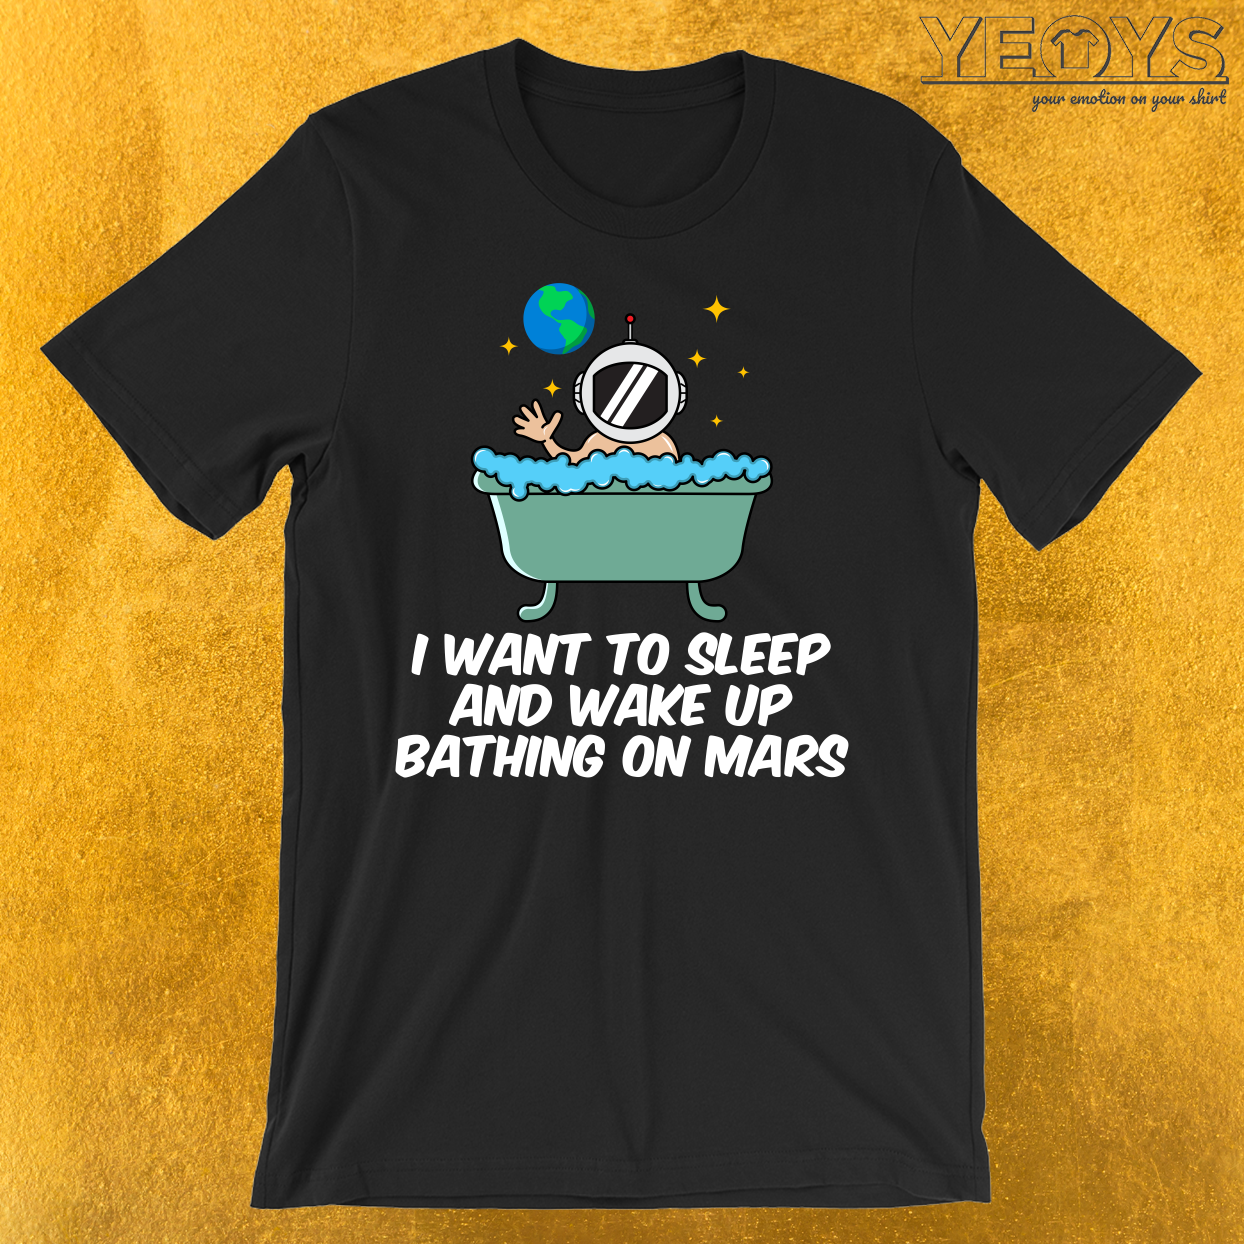 I Want To Sleep And Wake Up Bathing On Mars T-Shirt